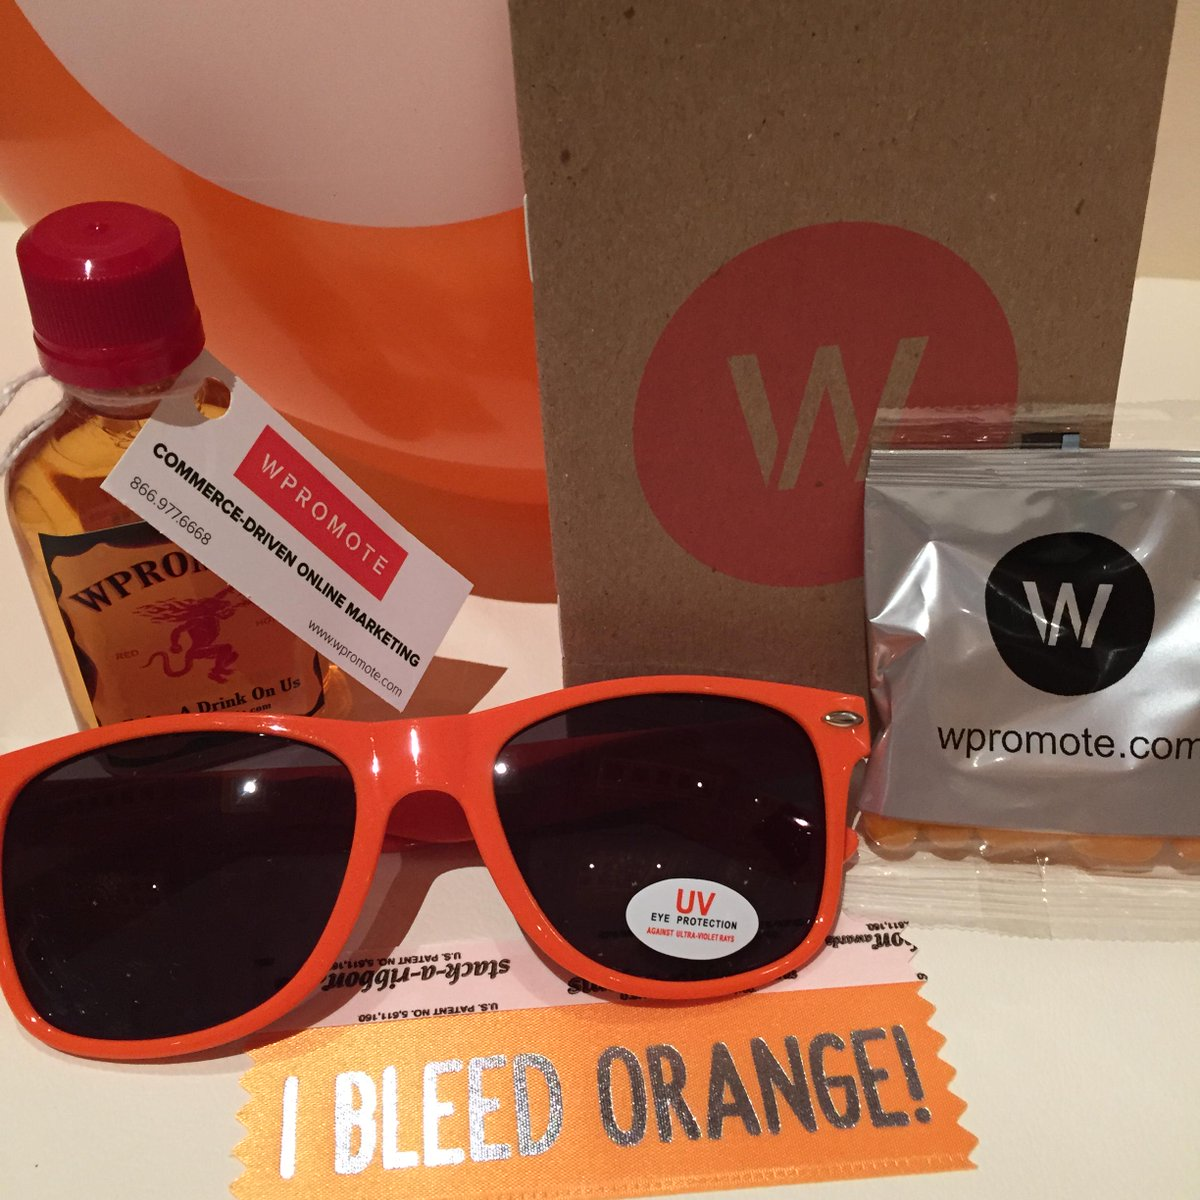 Wpromote: We are excited for marketplace to open, come check out our great swag at Wpromote booth #207 #ImagineCommerce http://t.co/cSQOZRnEoT